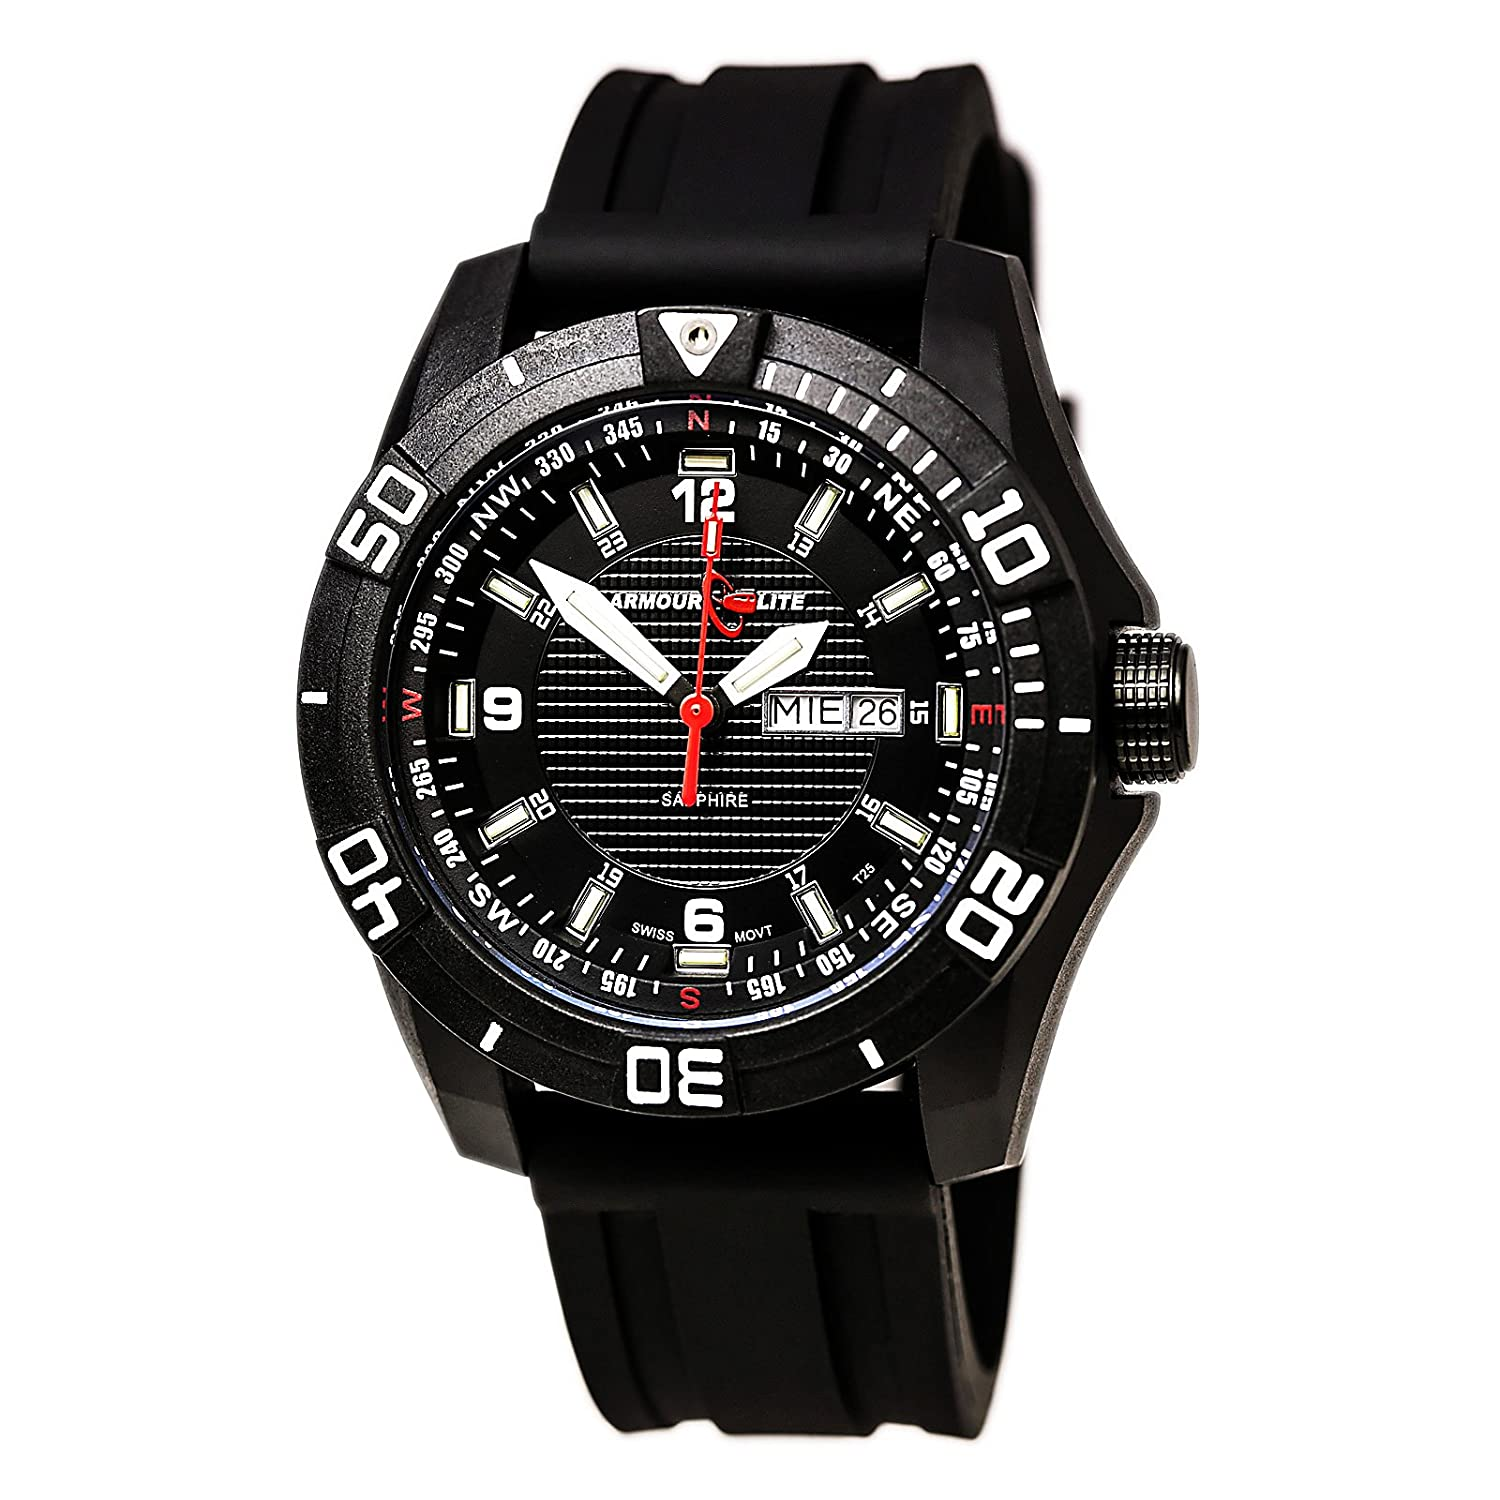 Armourlite Navigator AL1001 Watch - Rubber